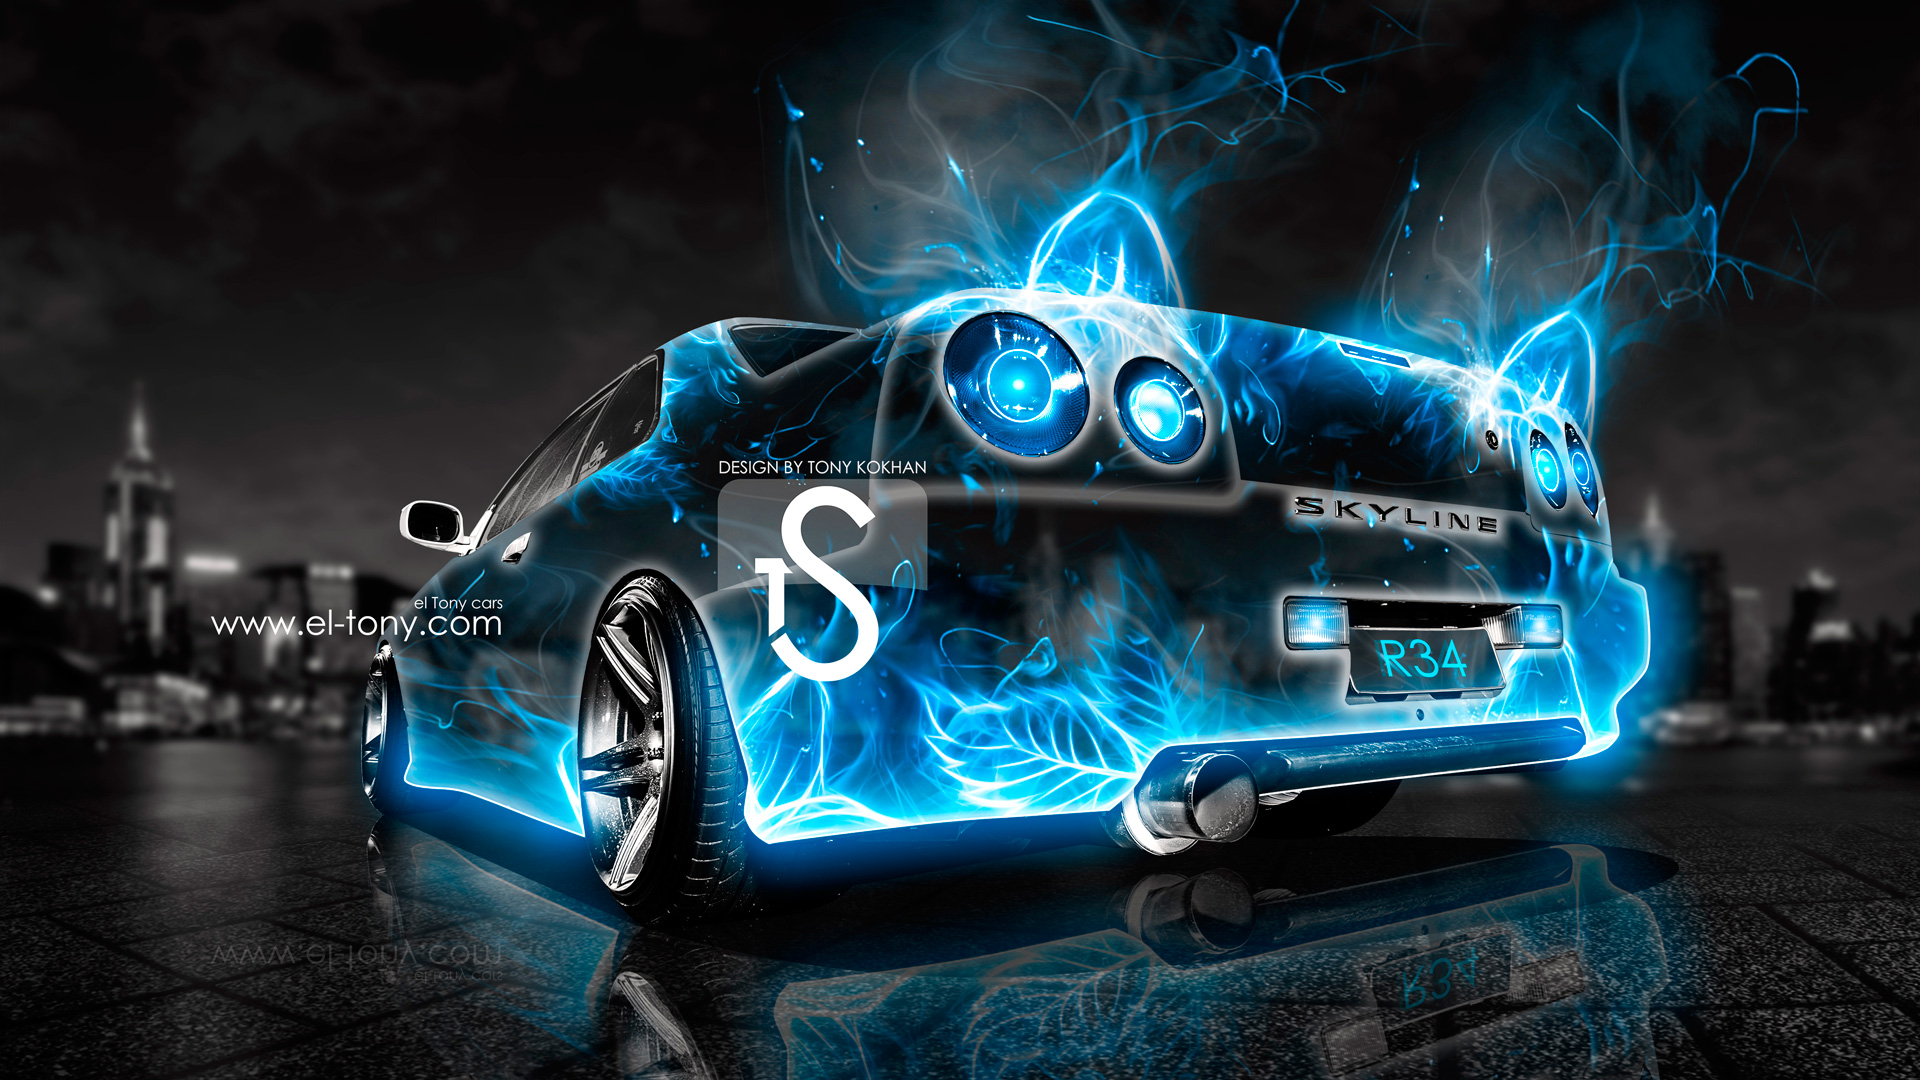 74 Skyline Car Wallpaper On Wallpapersafari